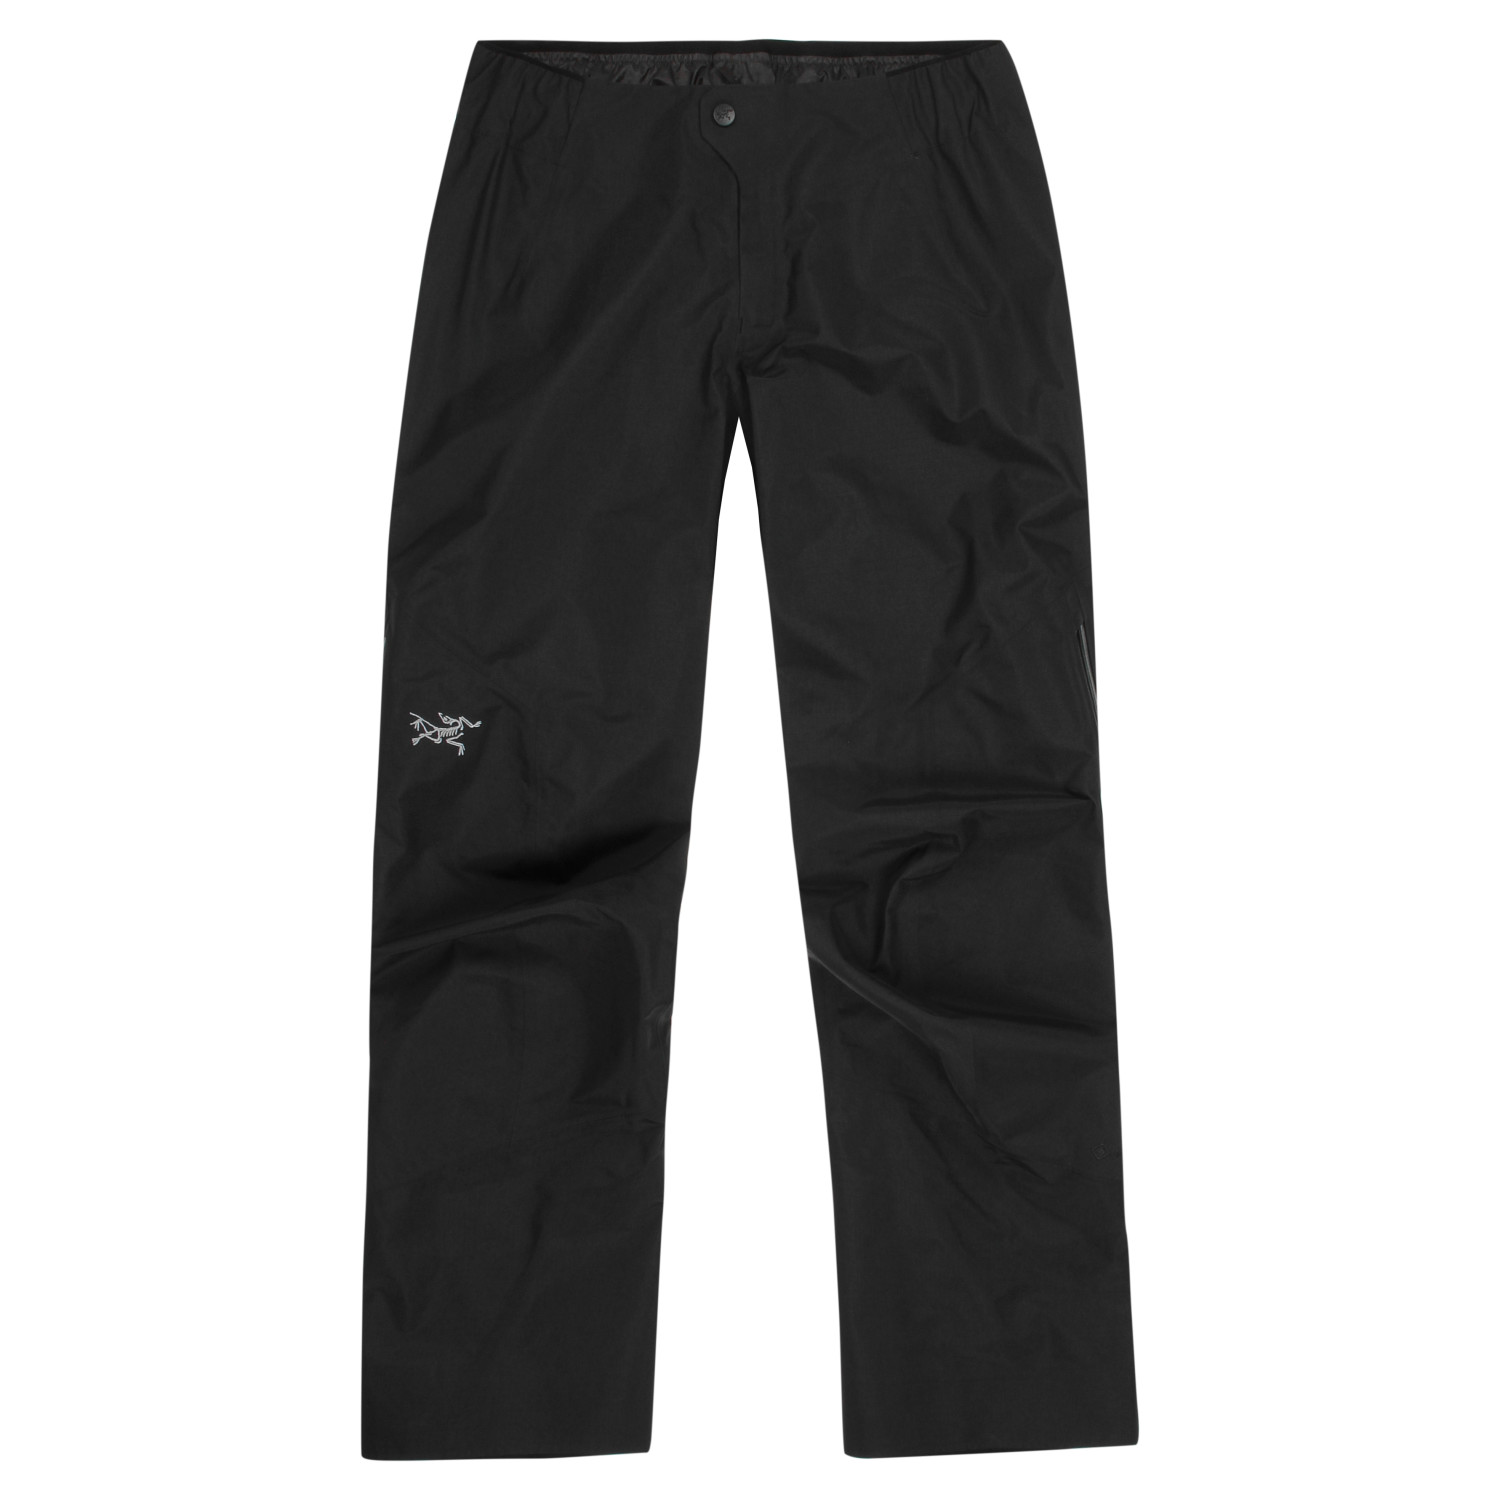 Main product image: Zeta SL Pant Men's